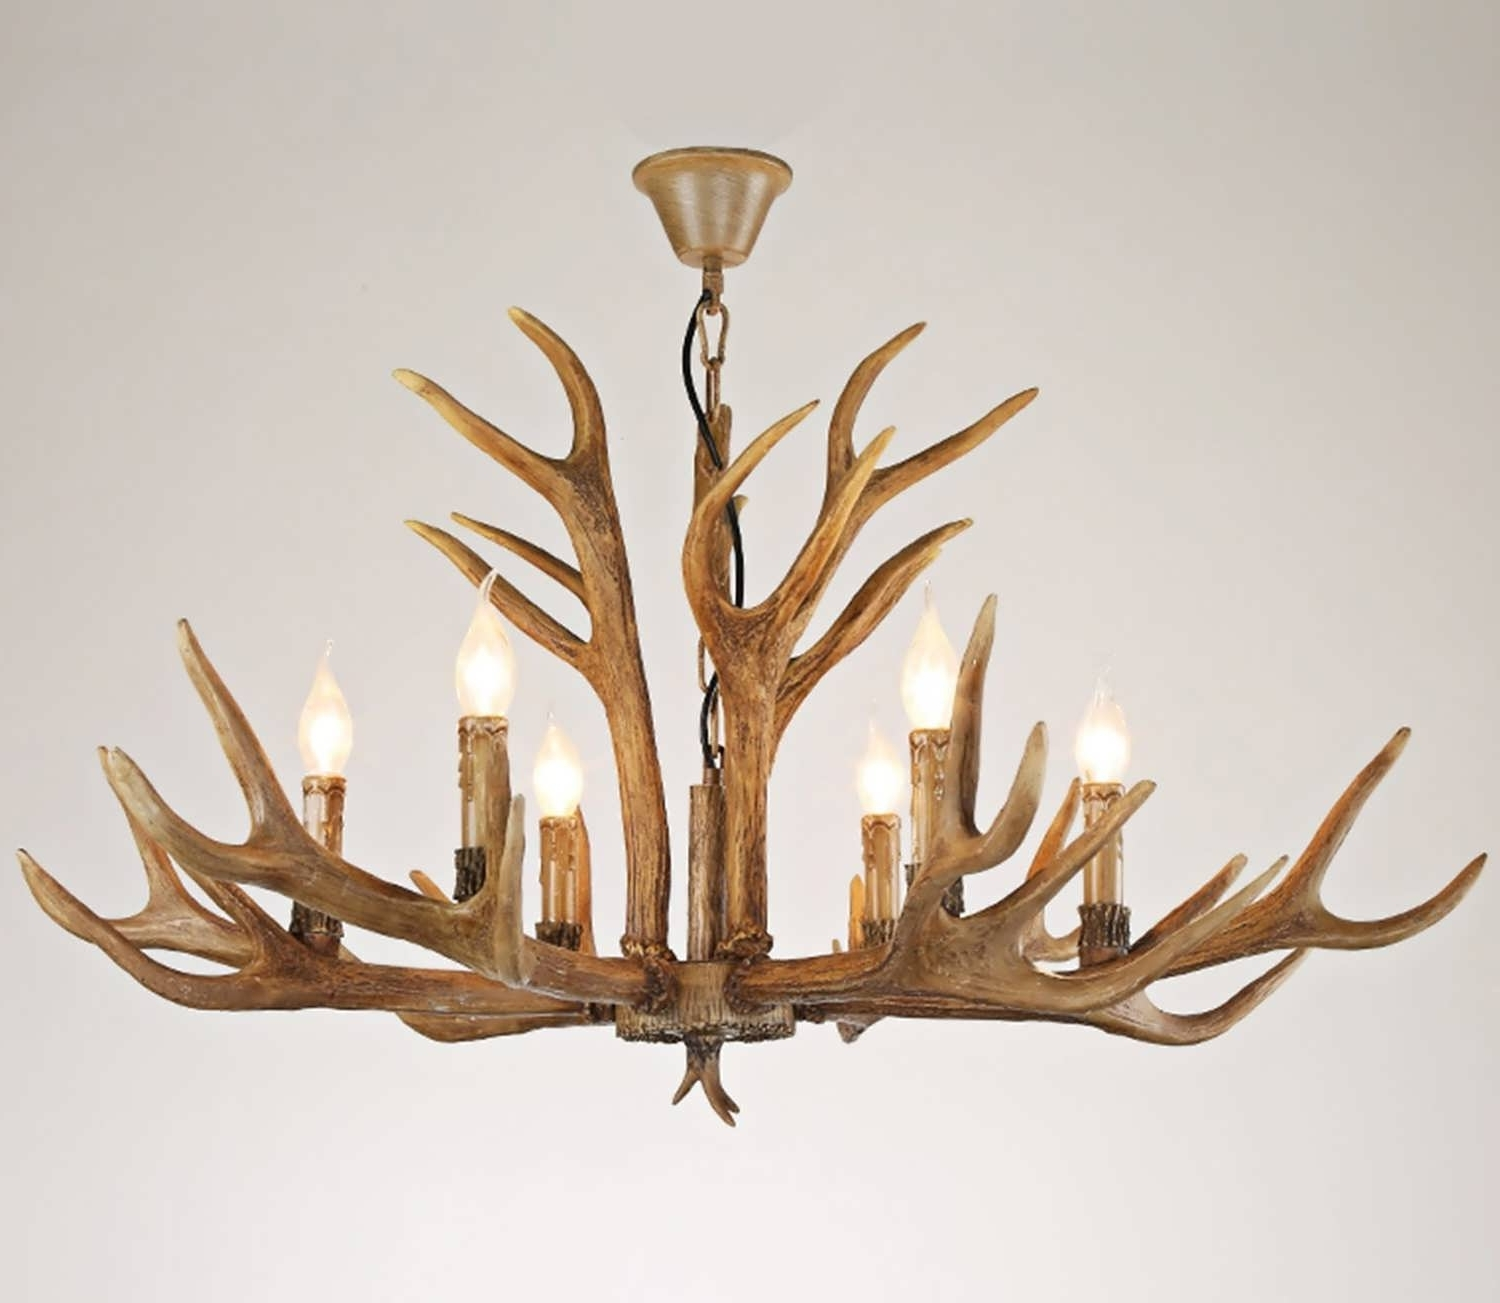 Stag Horn Chandelier Throughout Most Up To Date Chandelier : Antler Light Fitting Rustic Chandeliers Outdoor Antler (View 2 of 15)